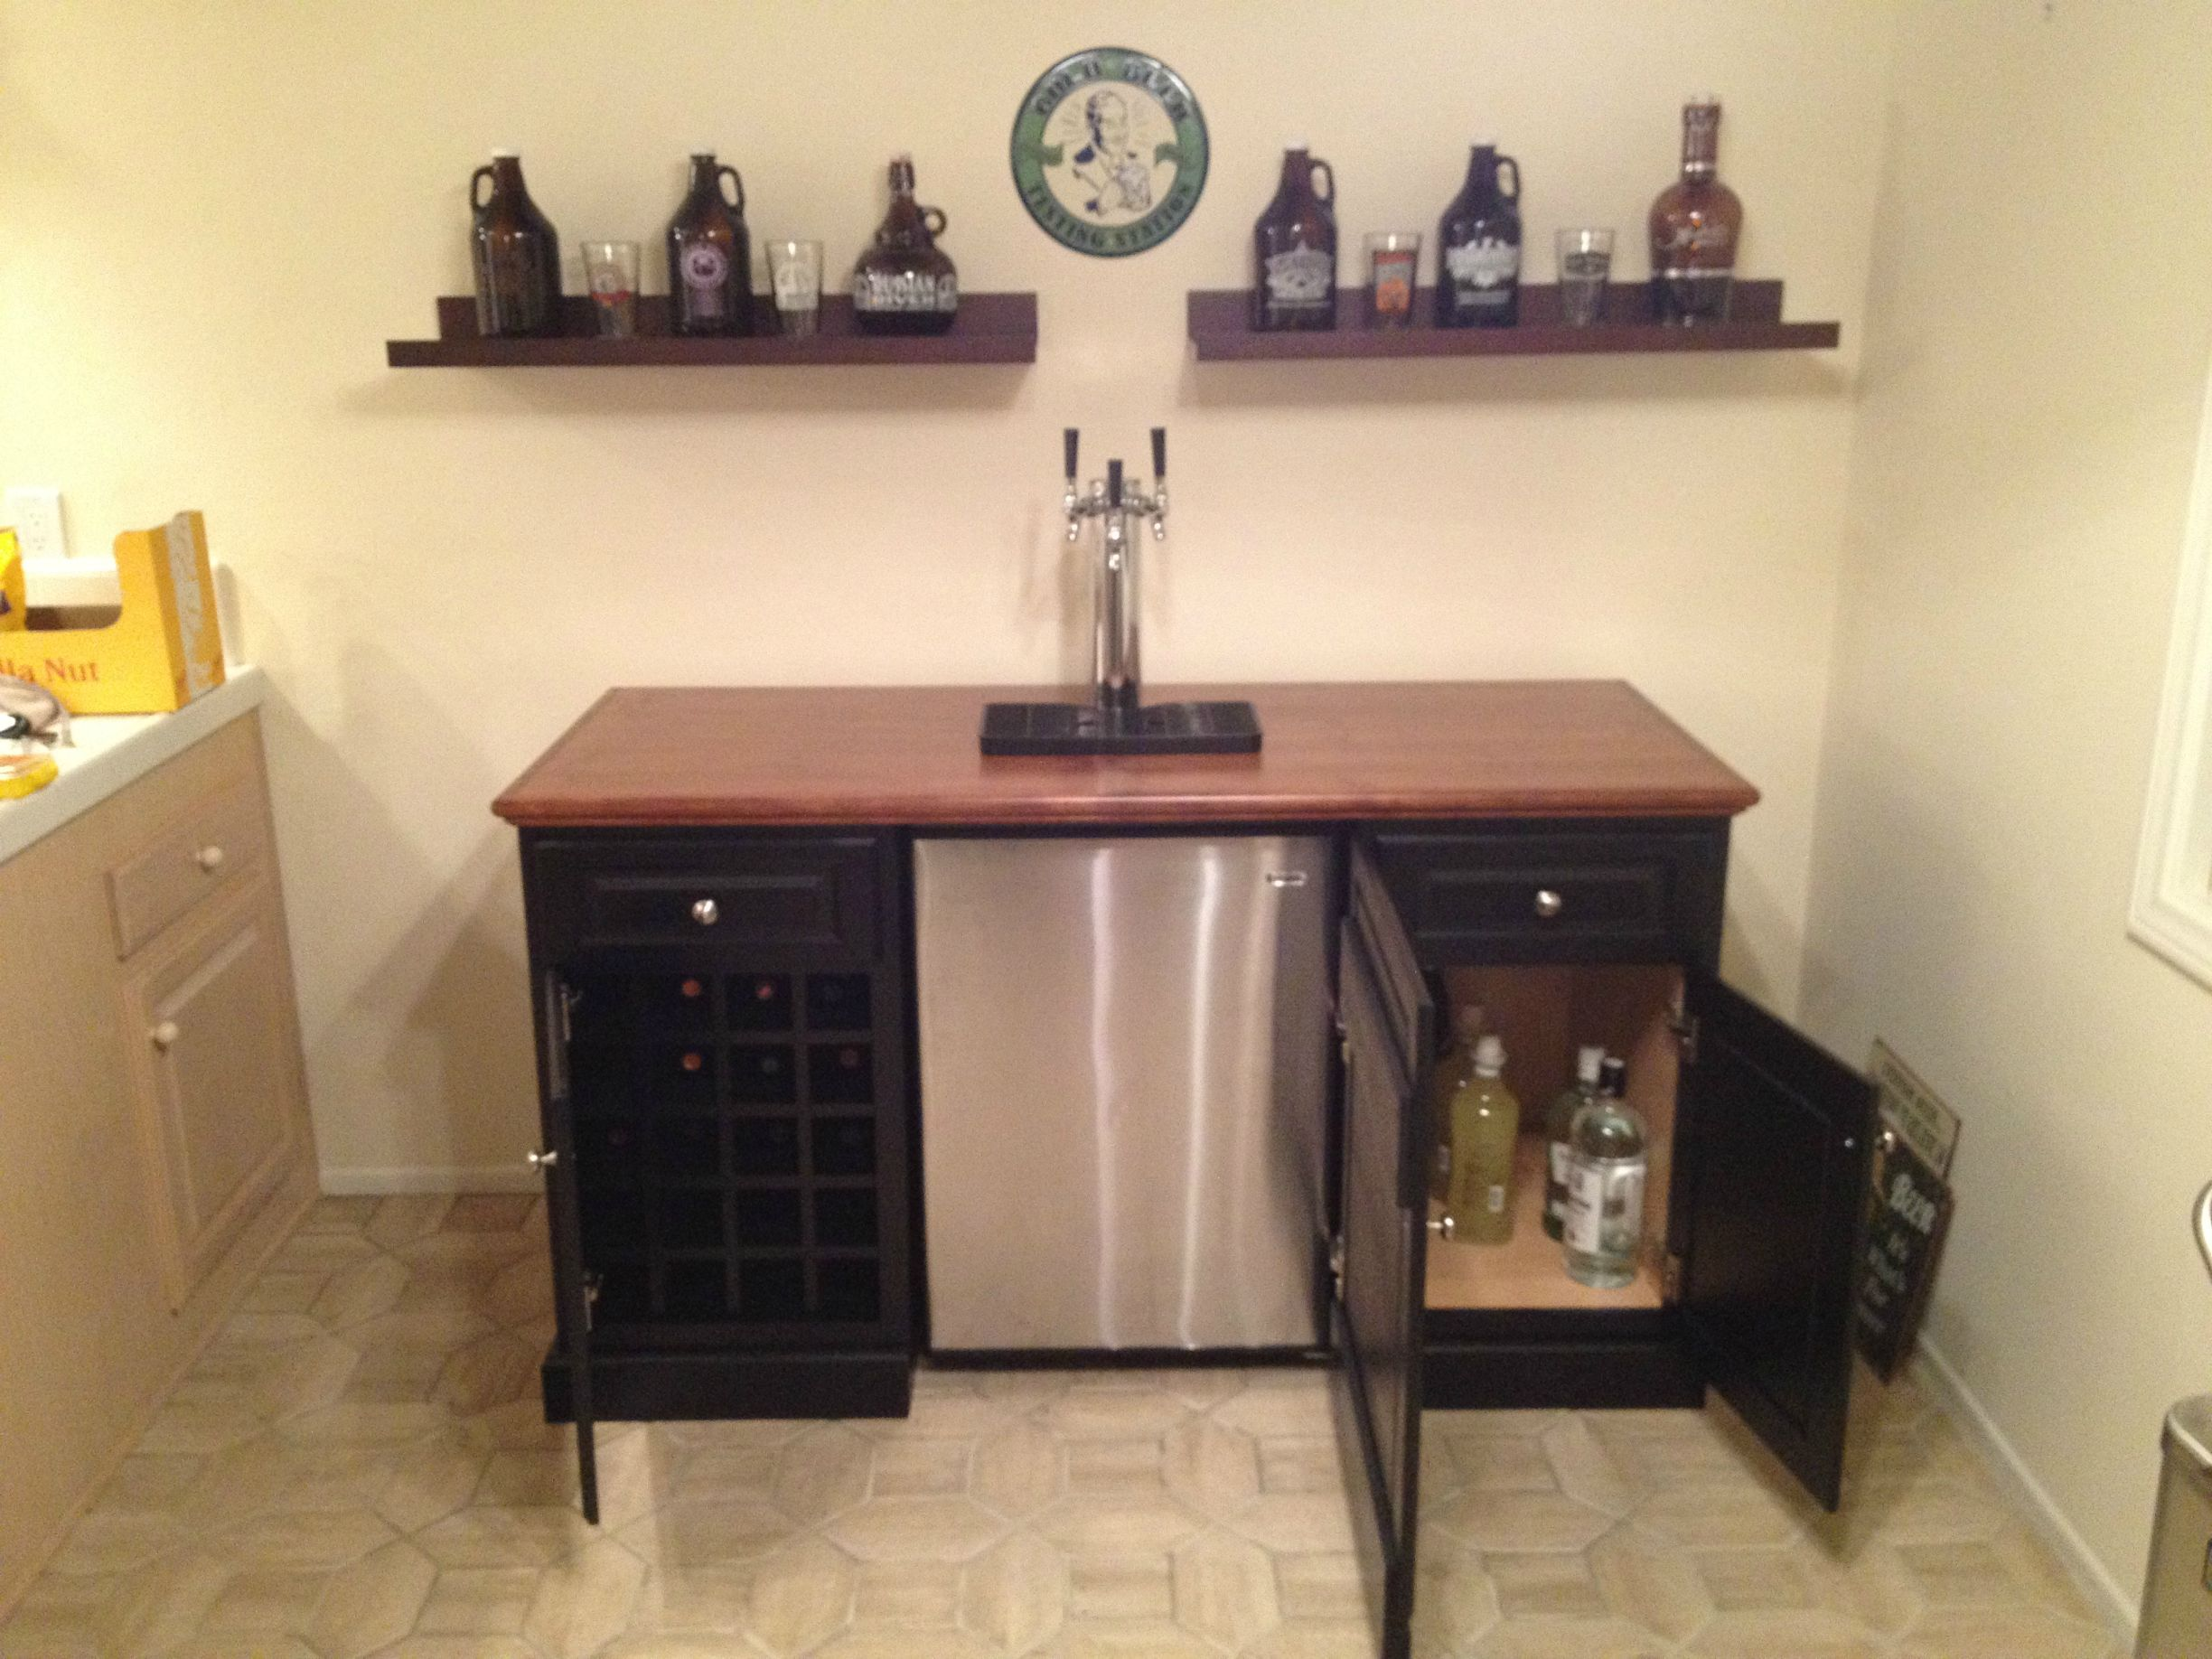 Mini Fridge with Cabinet Space for Bar